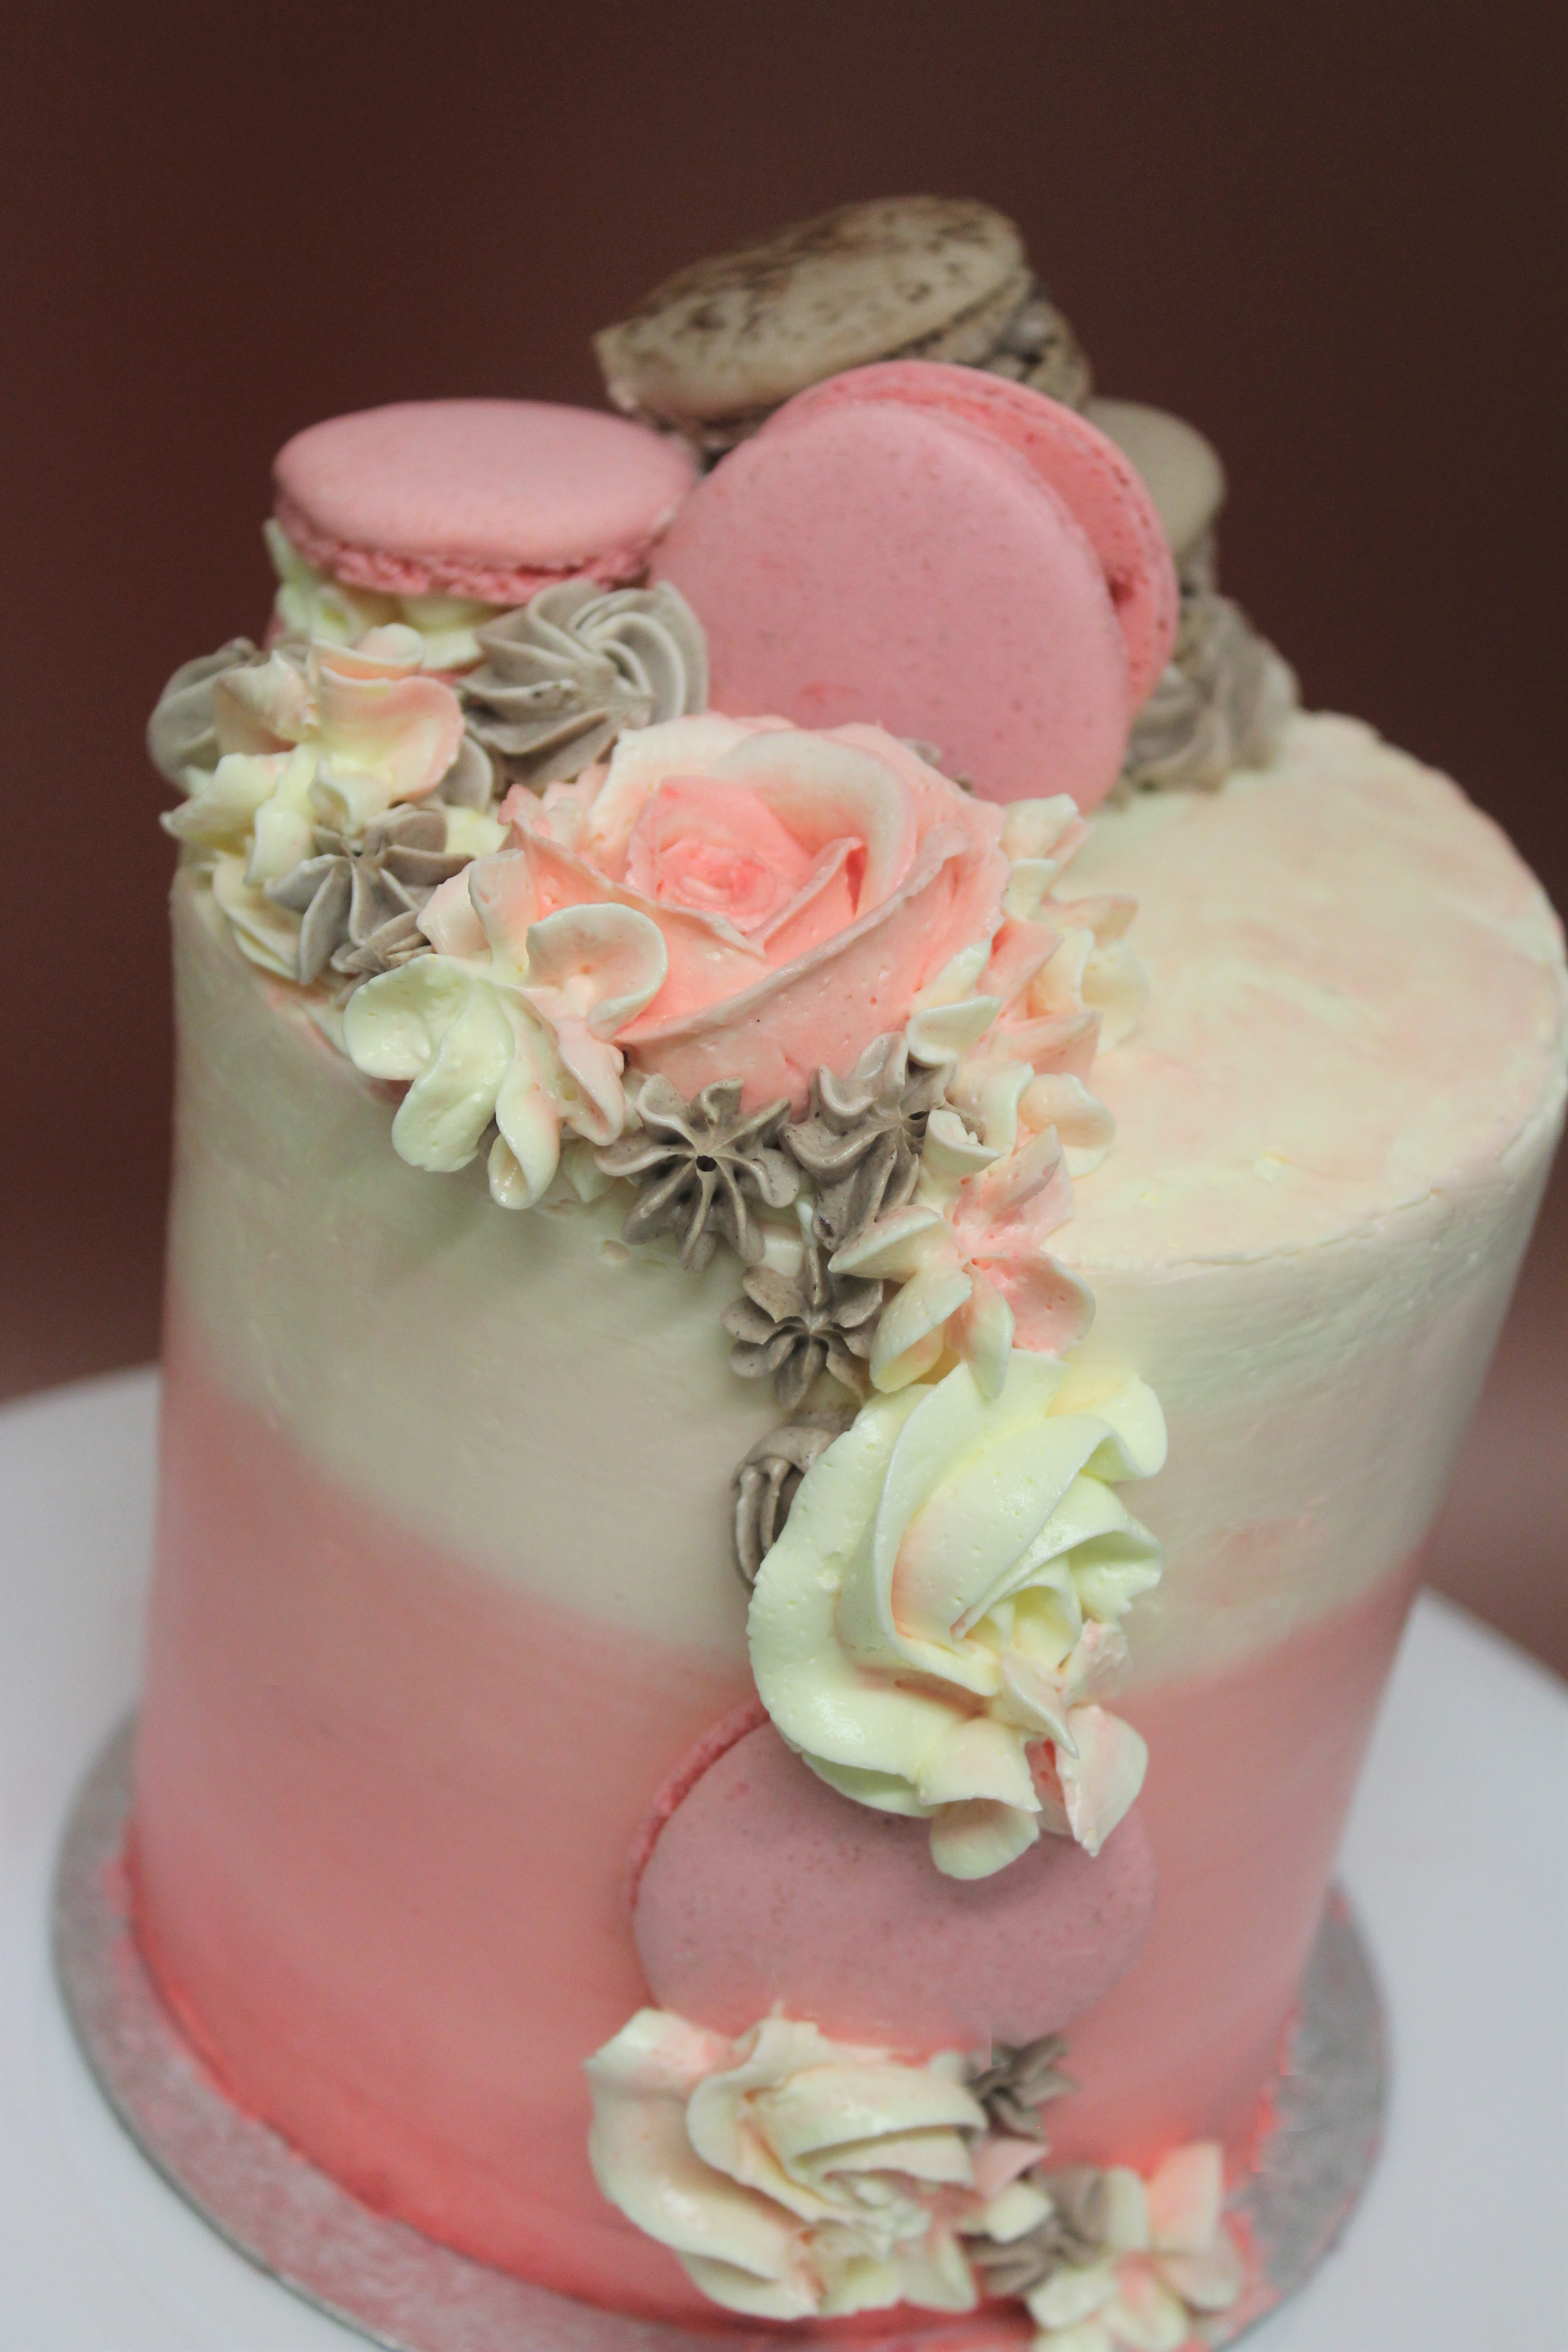 Pink Ombre cake with macaron